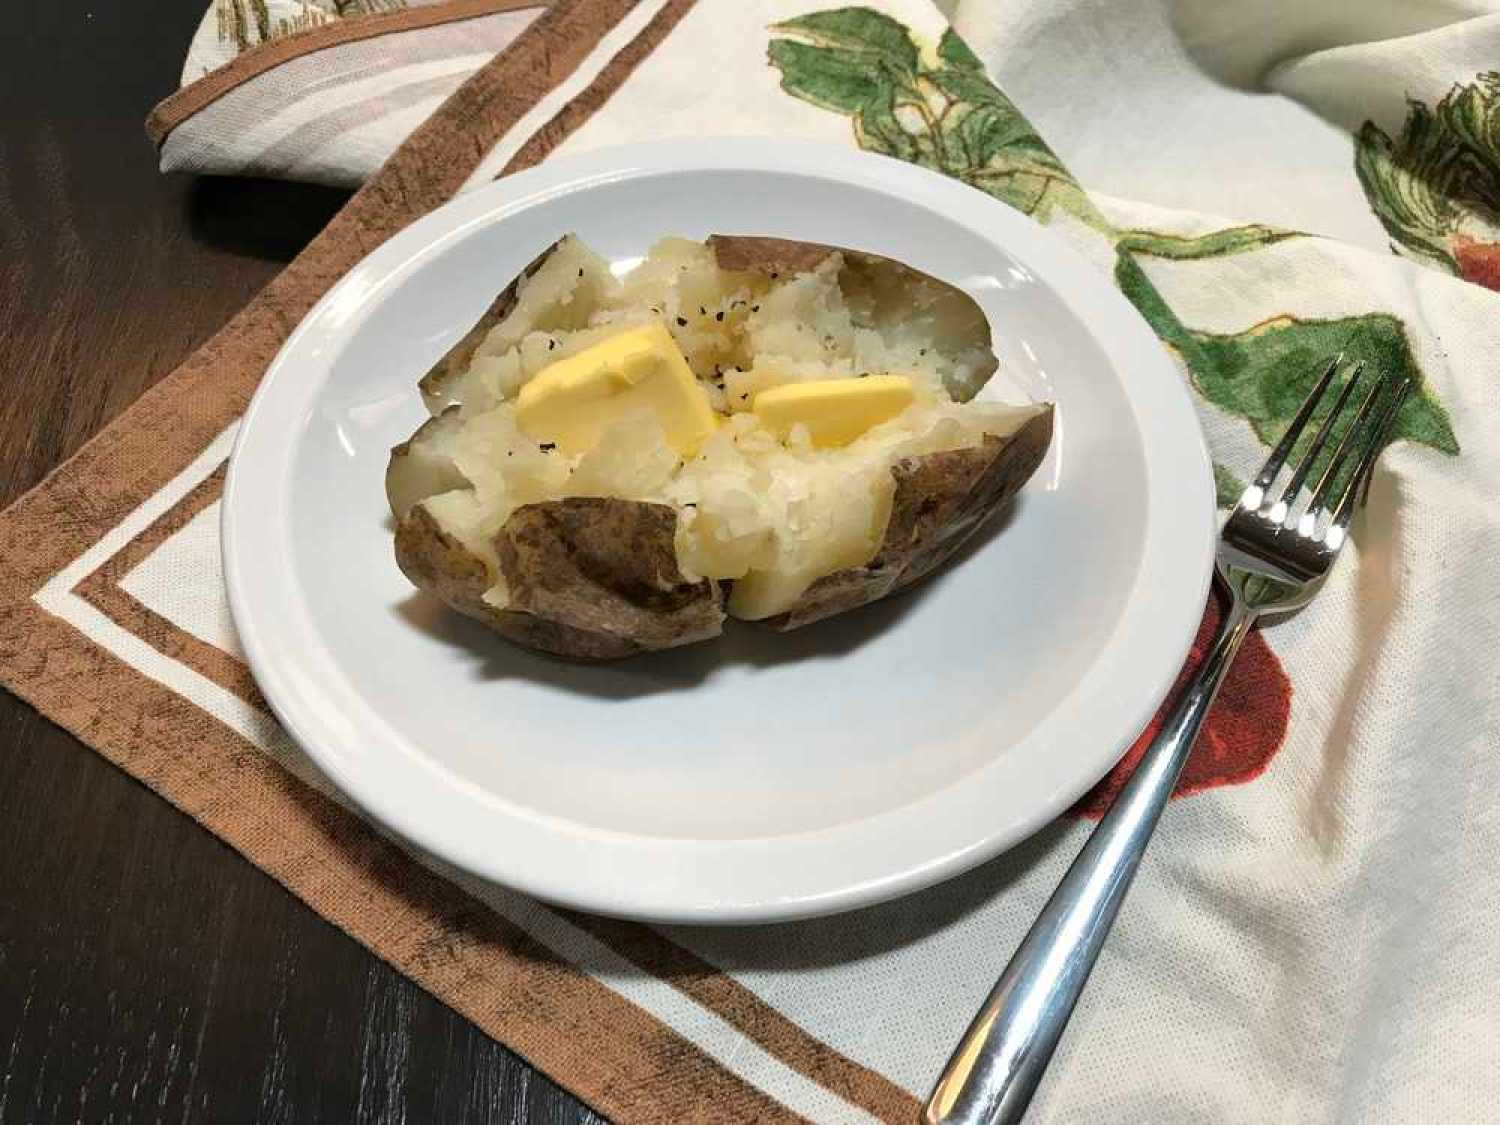 Russet Potato Perfectly Baked in Instant Pot, Ready to Eat with Butter, Salt and Pepper